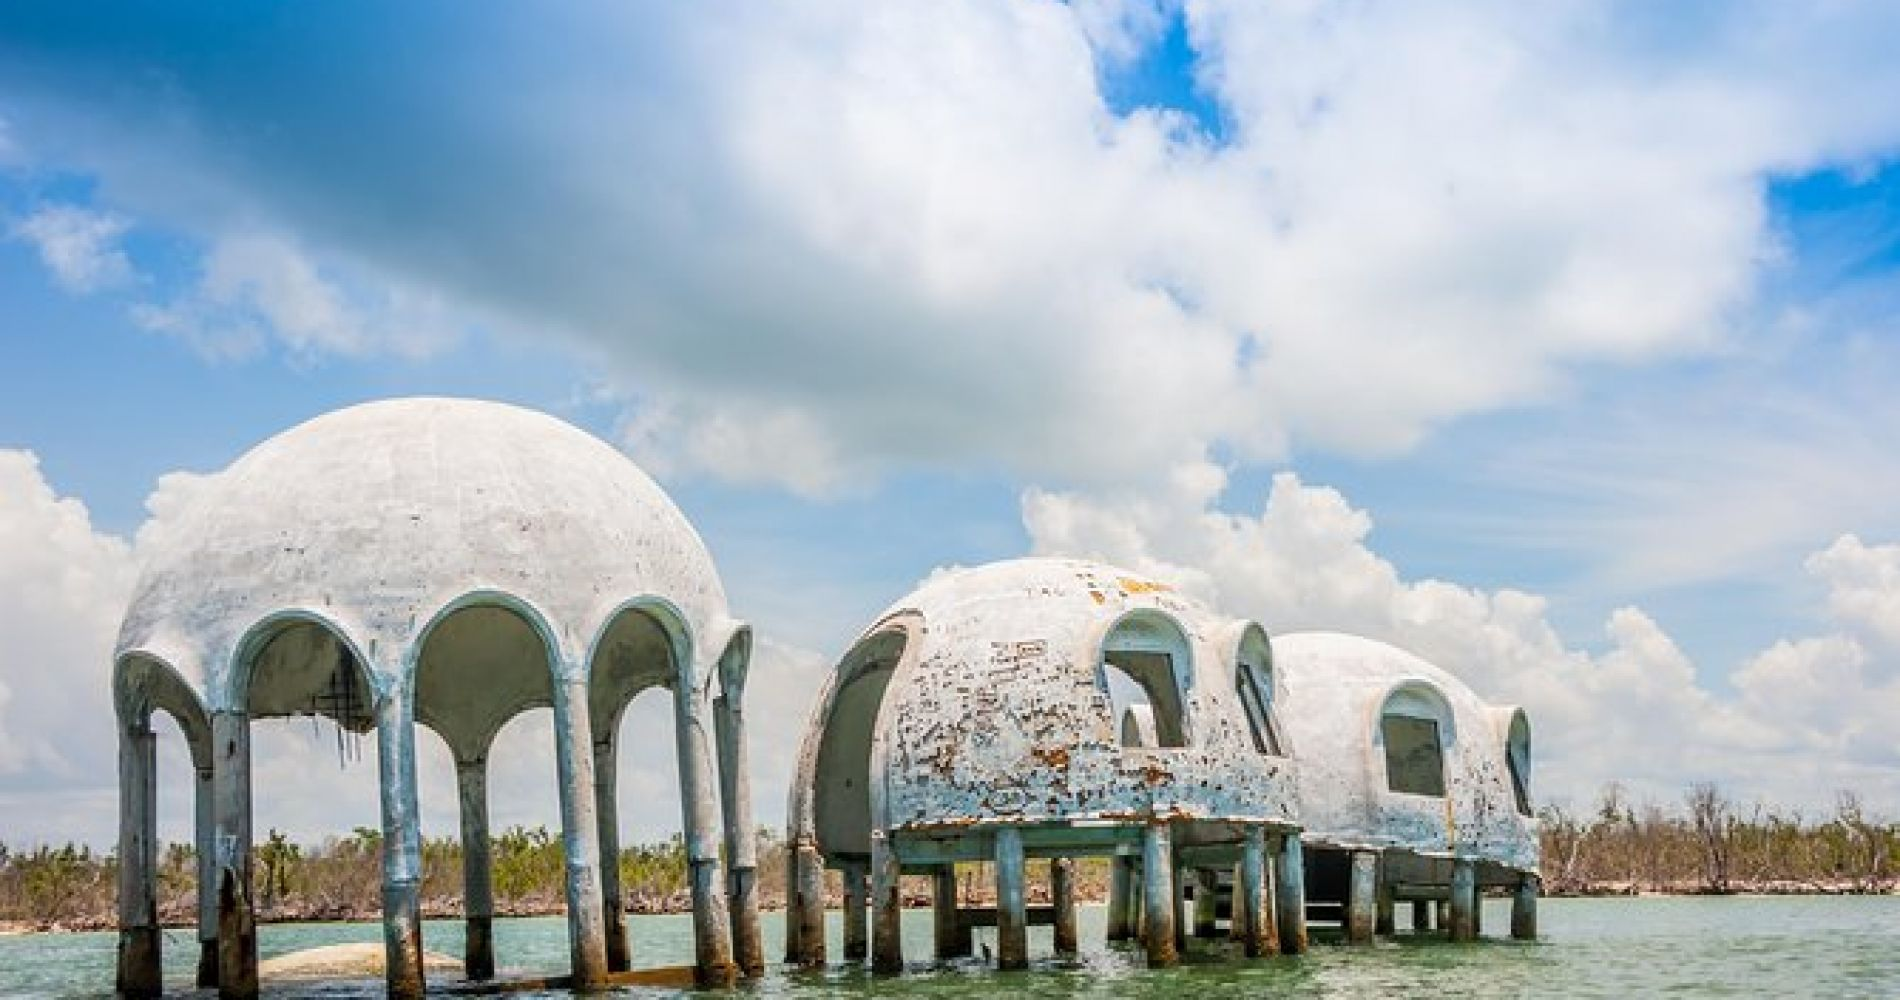 Cape Romano Boat Tour: Shelling and Sights from Marco Island